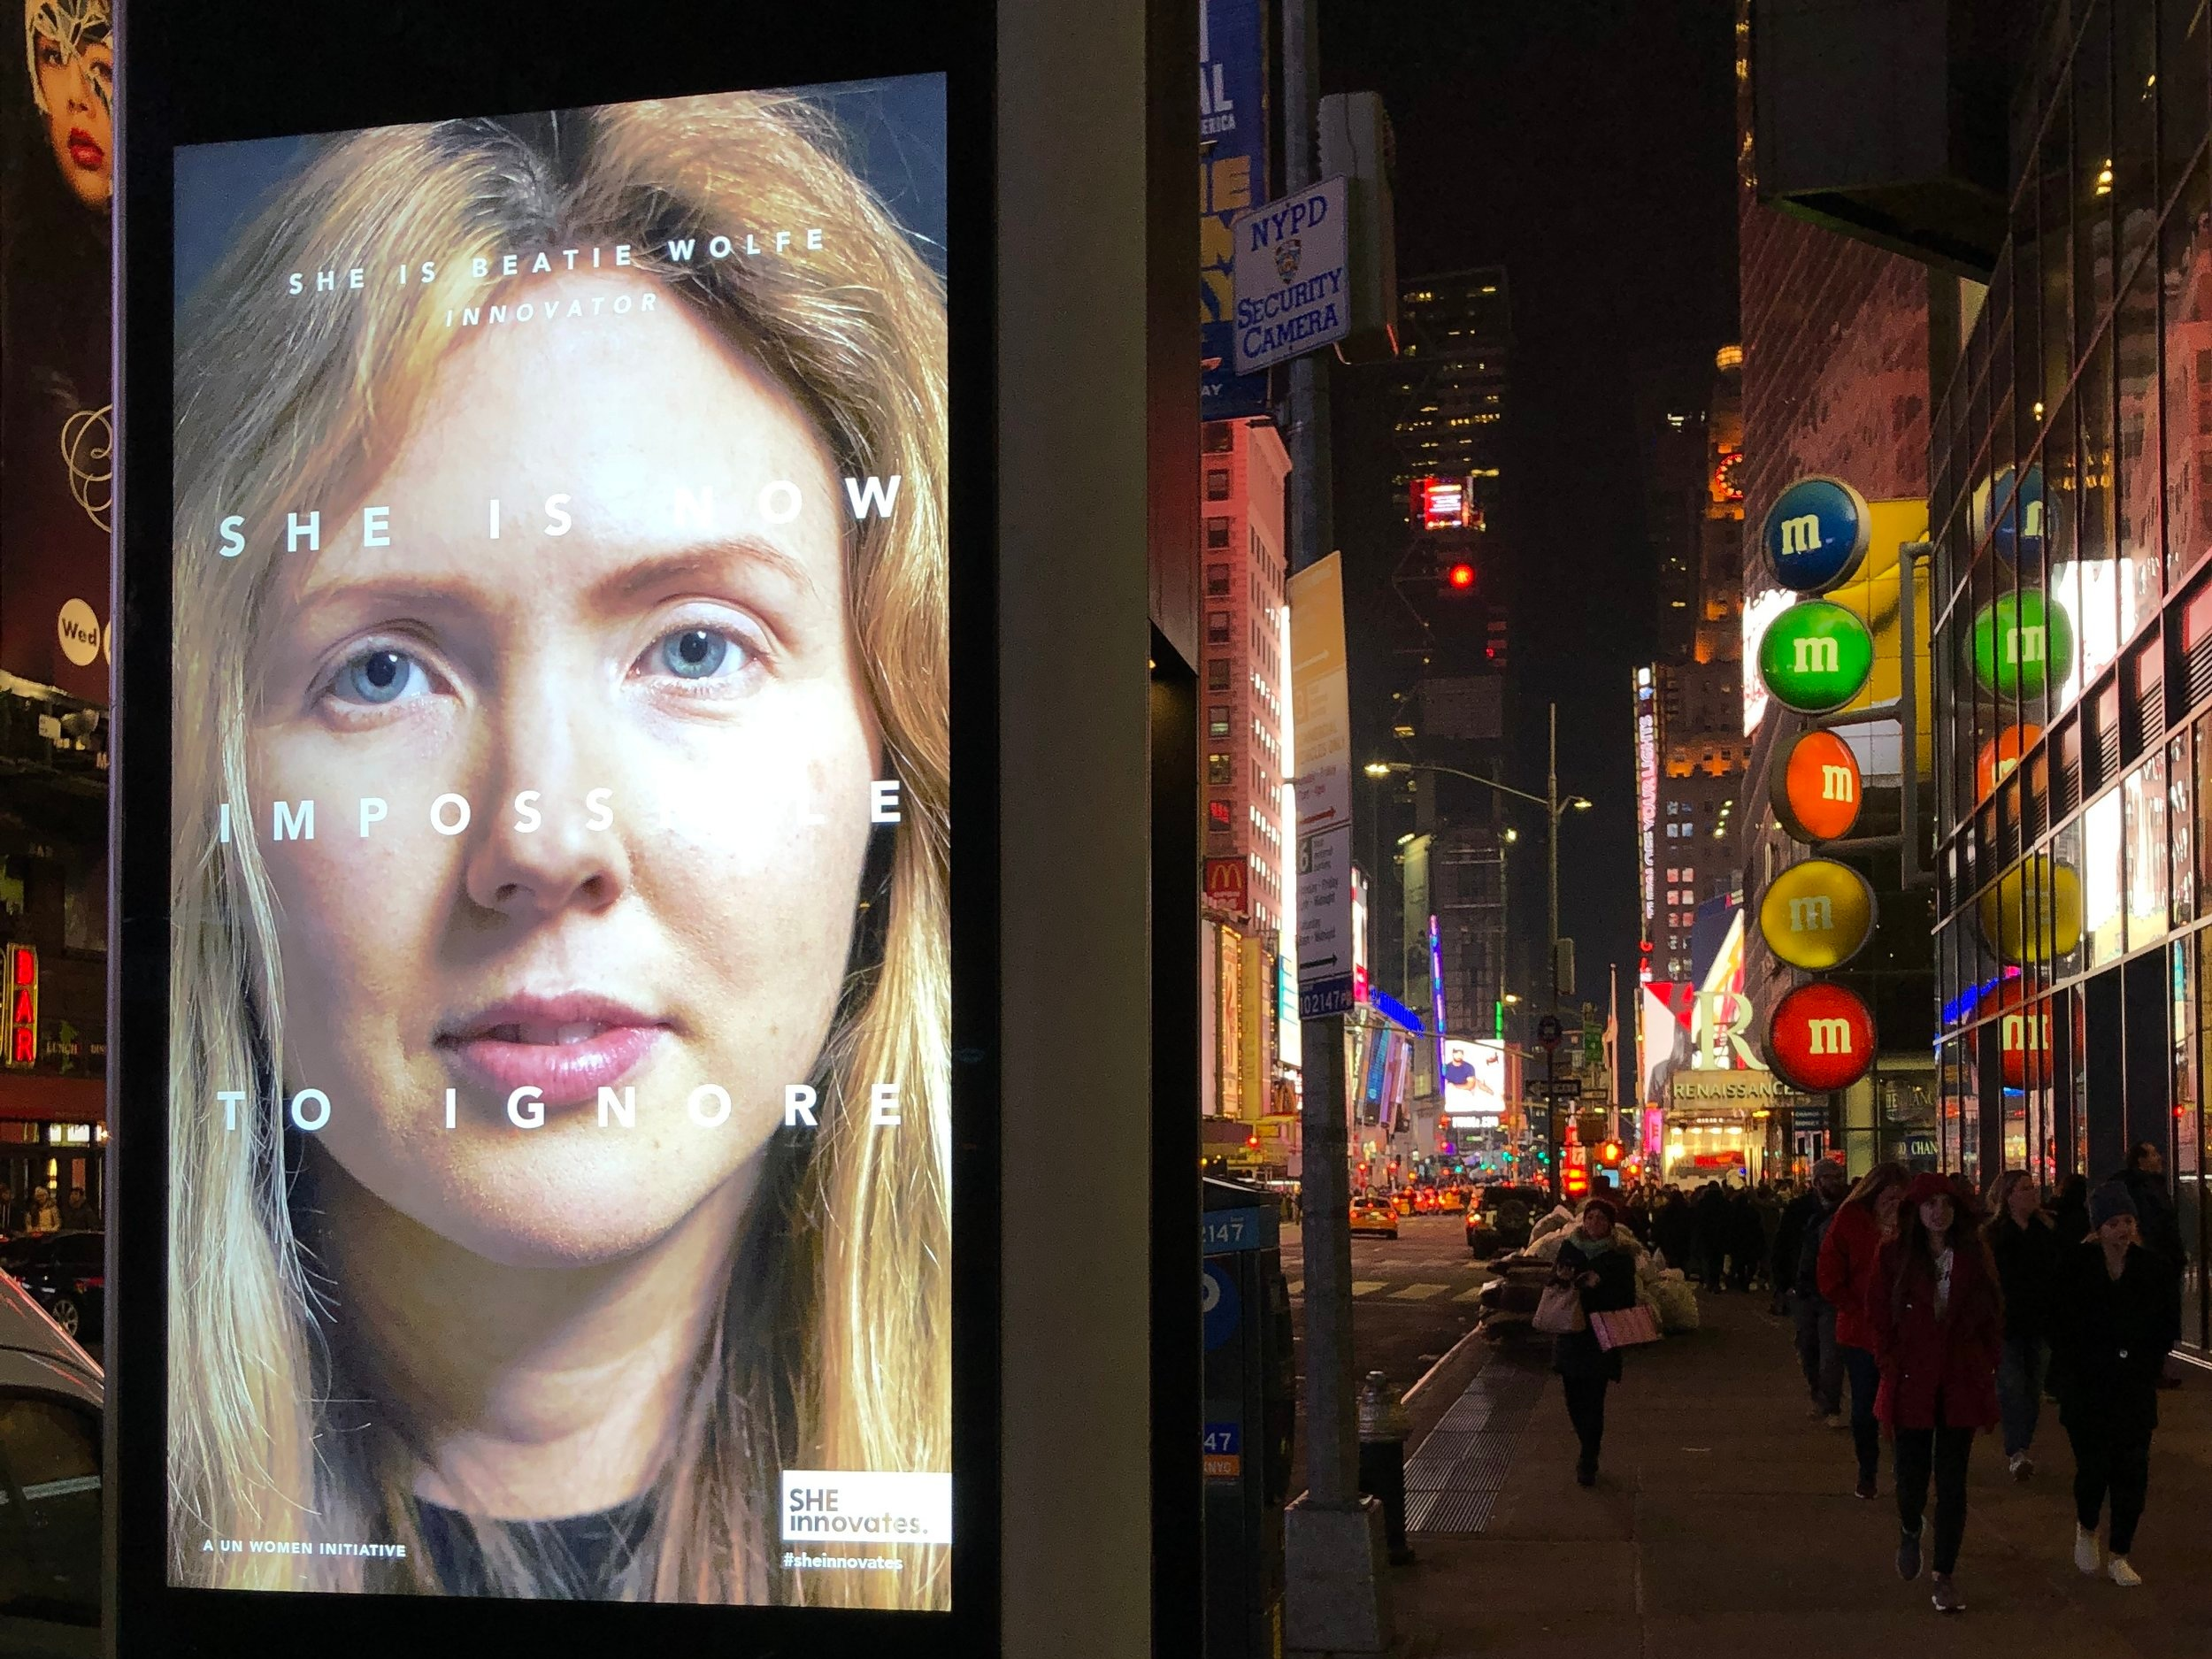 NYC 1 of 3500 spots in Manhatten ft Beatie Wolfe in UN campaign.JPG